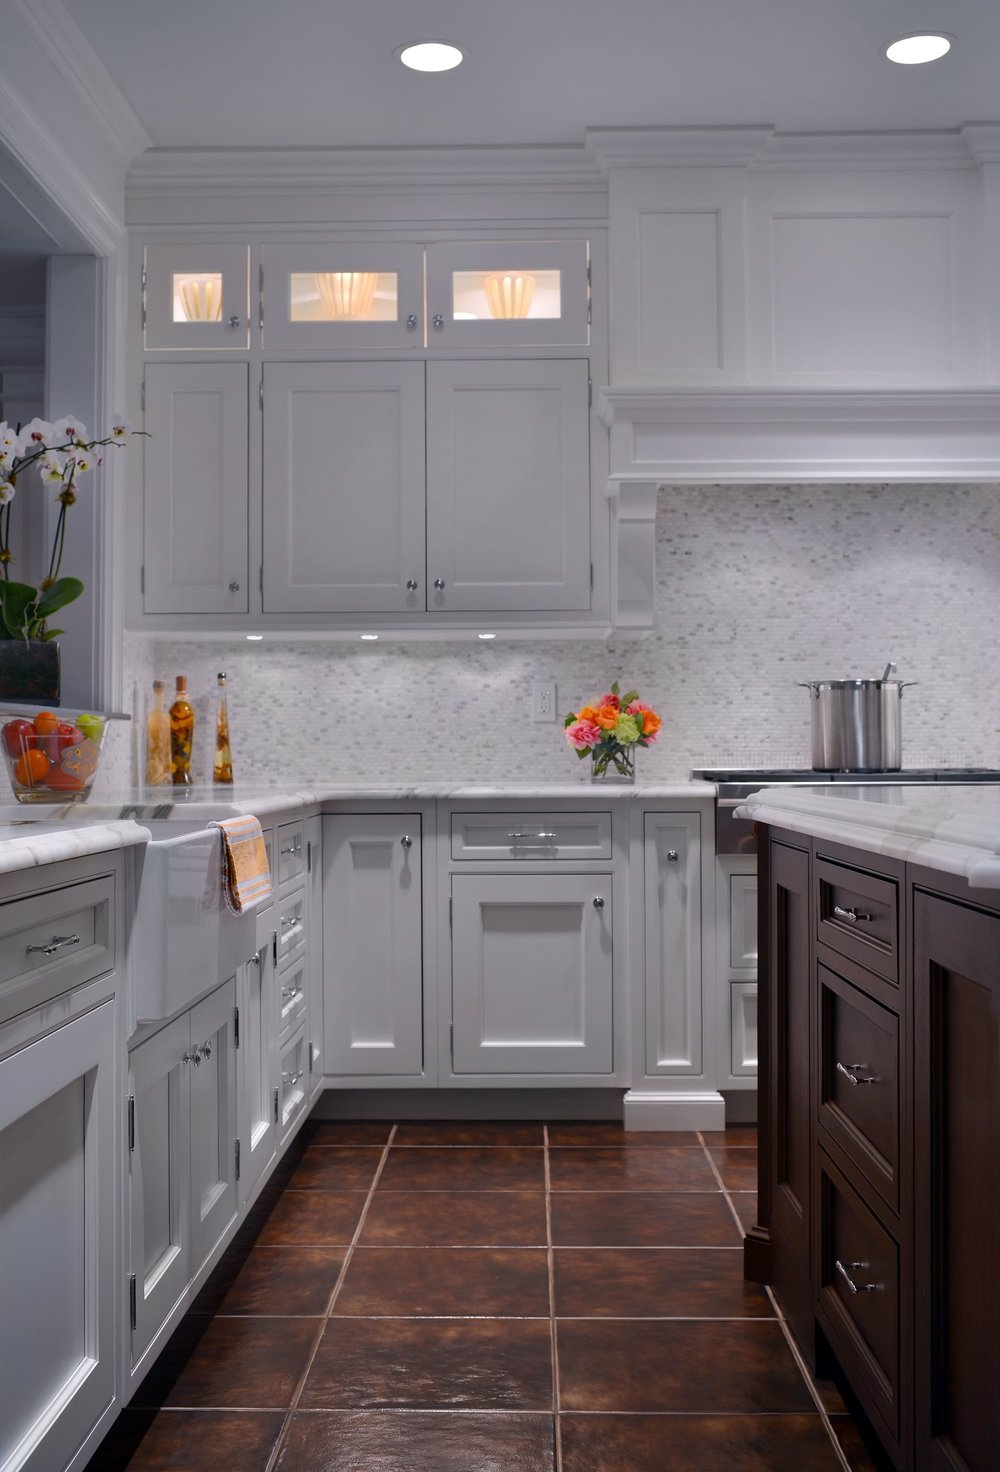 Transitional style kitchen with plenty of cabinets and drawers